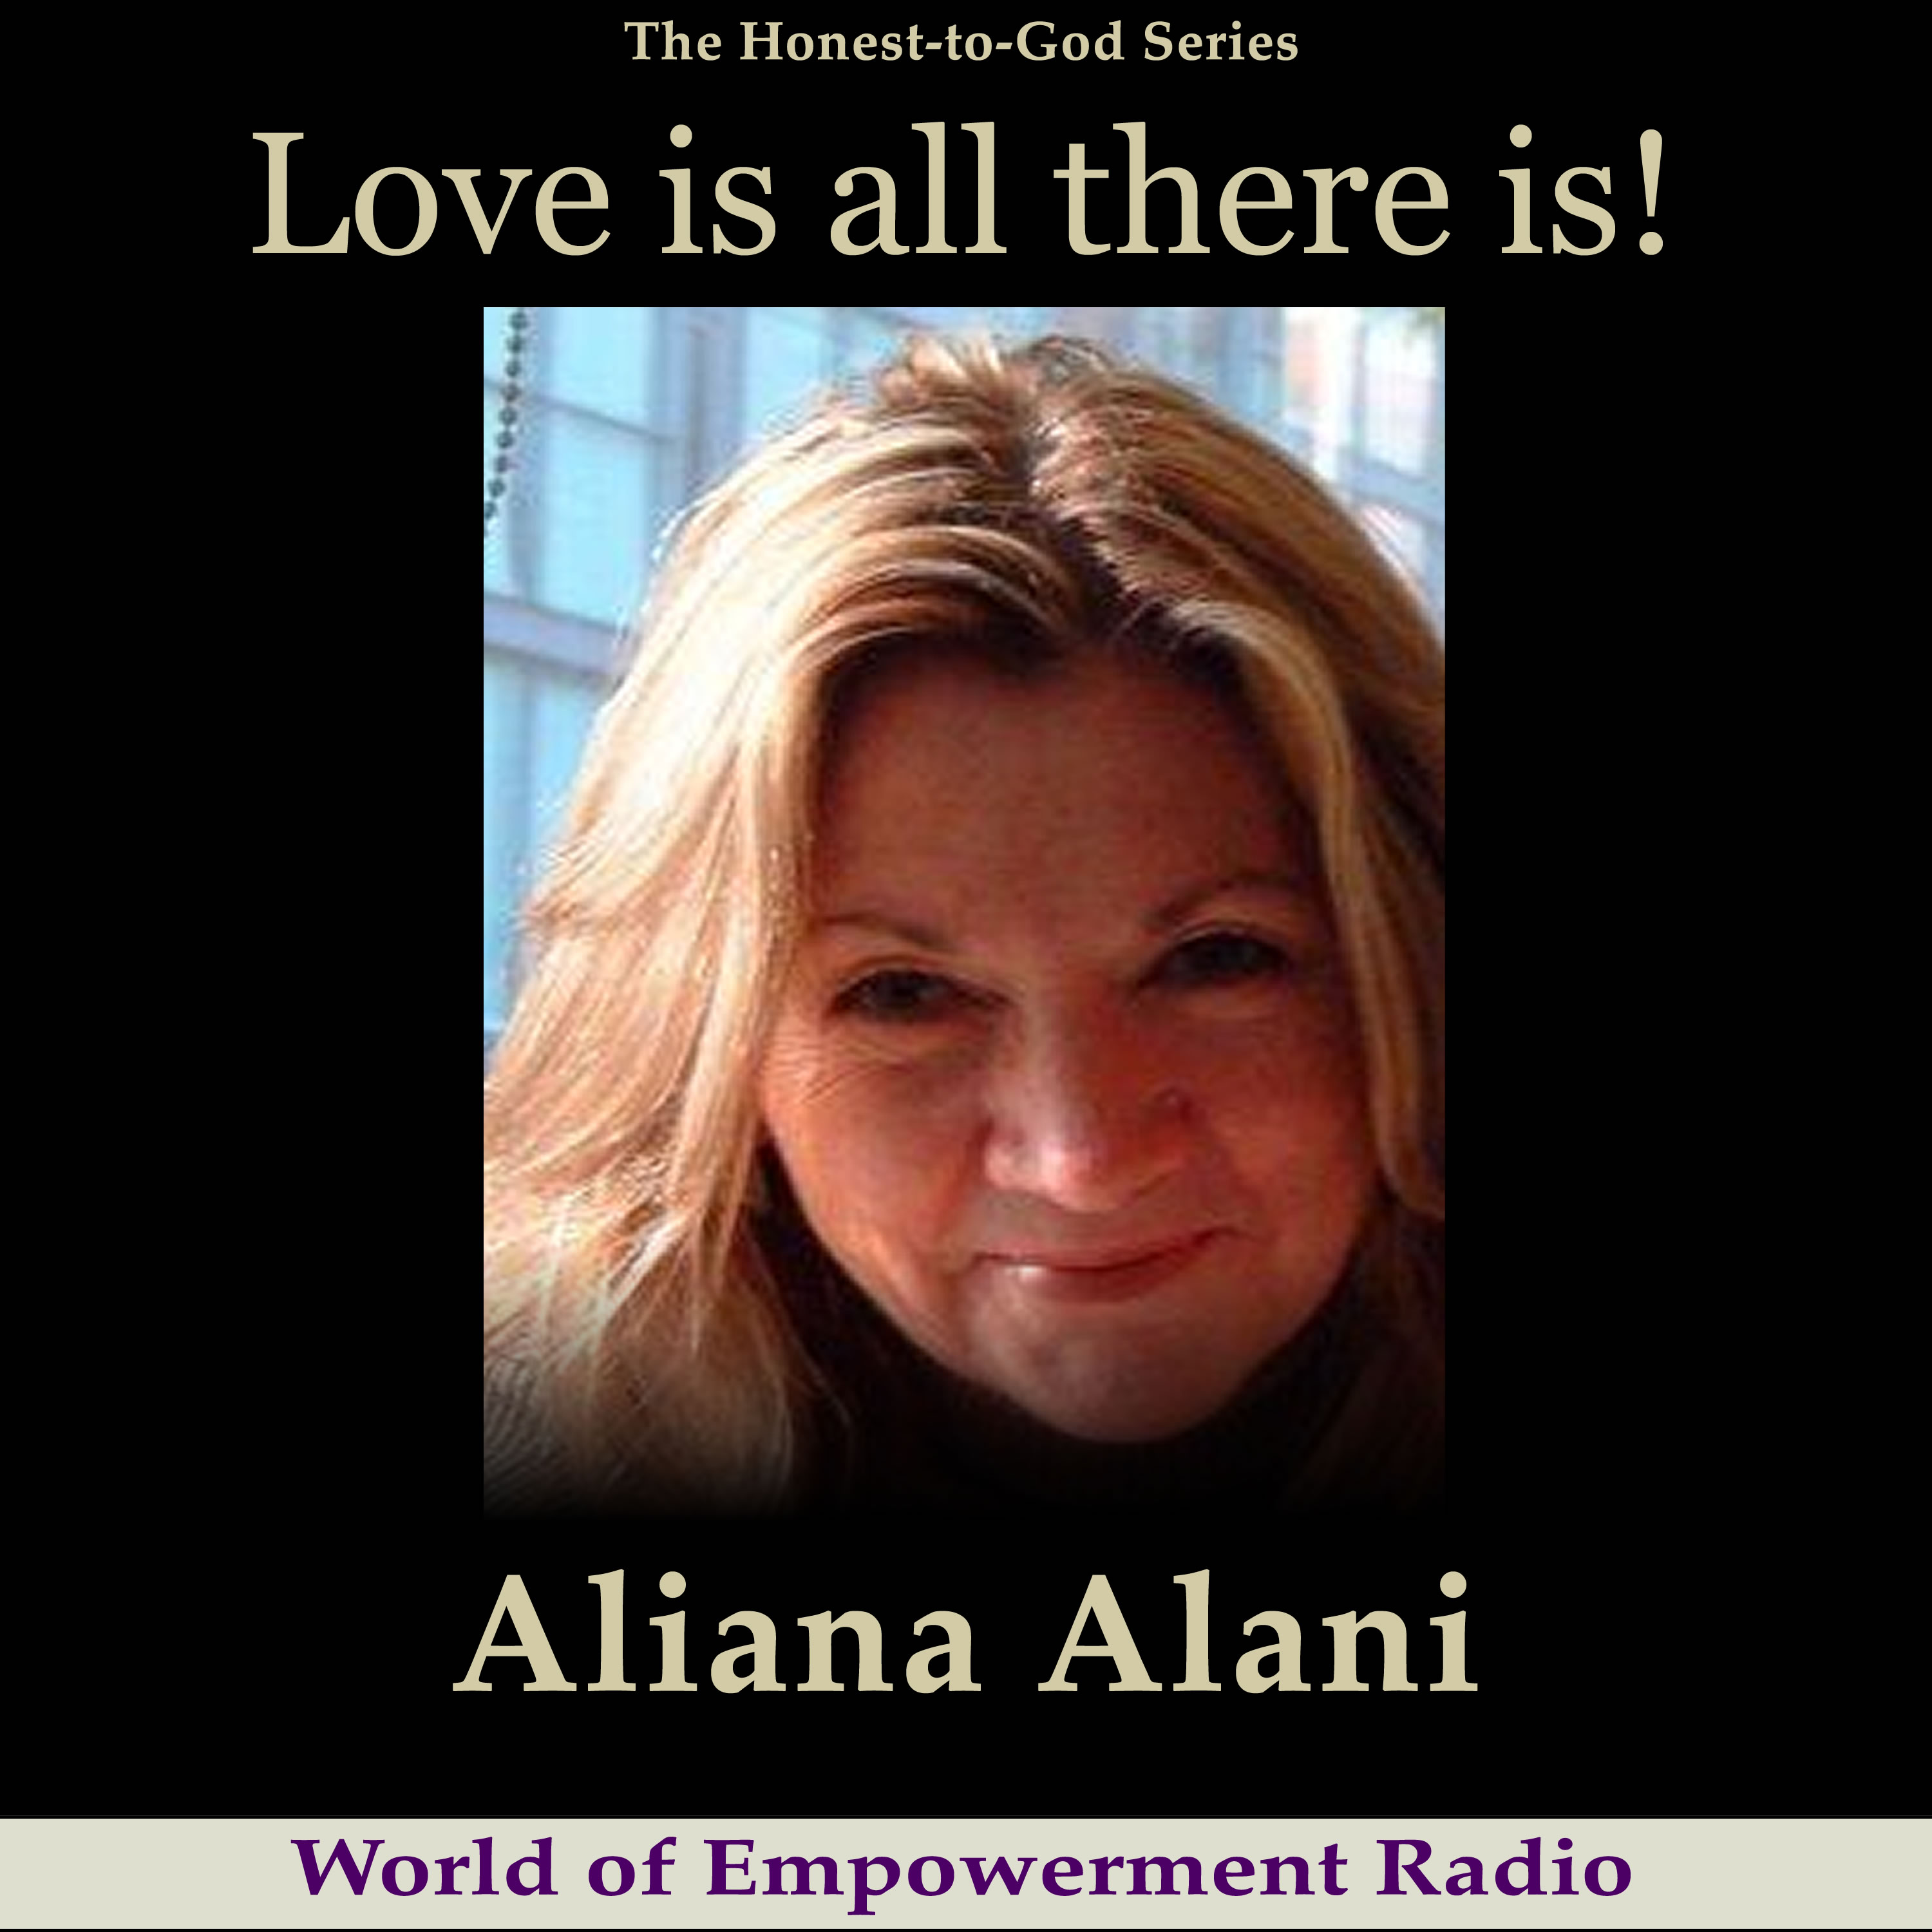 Aliani Alani on Love